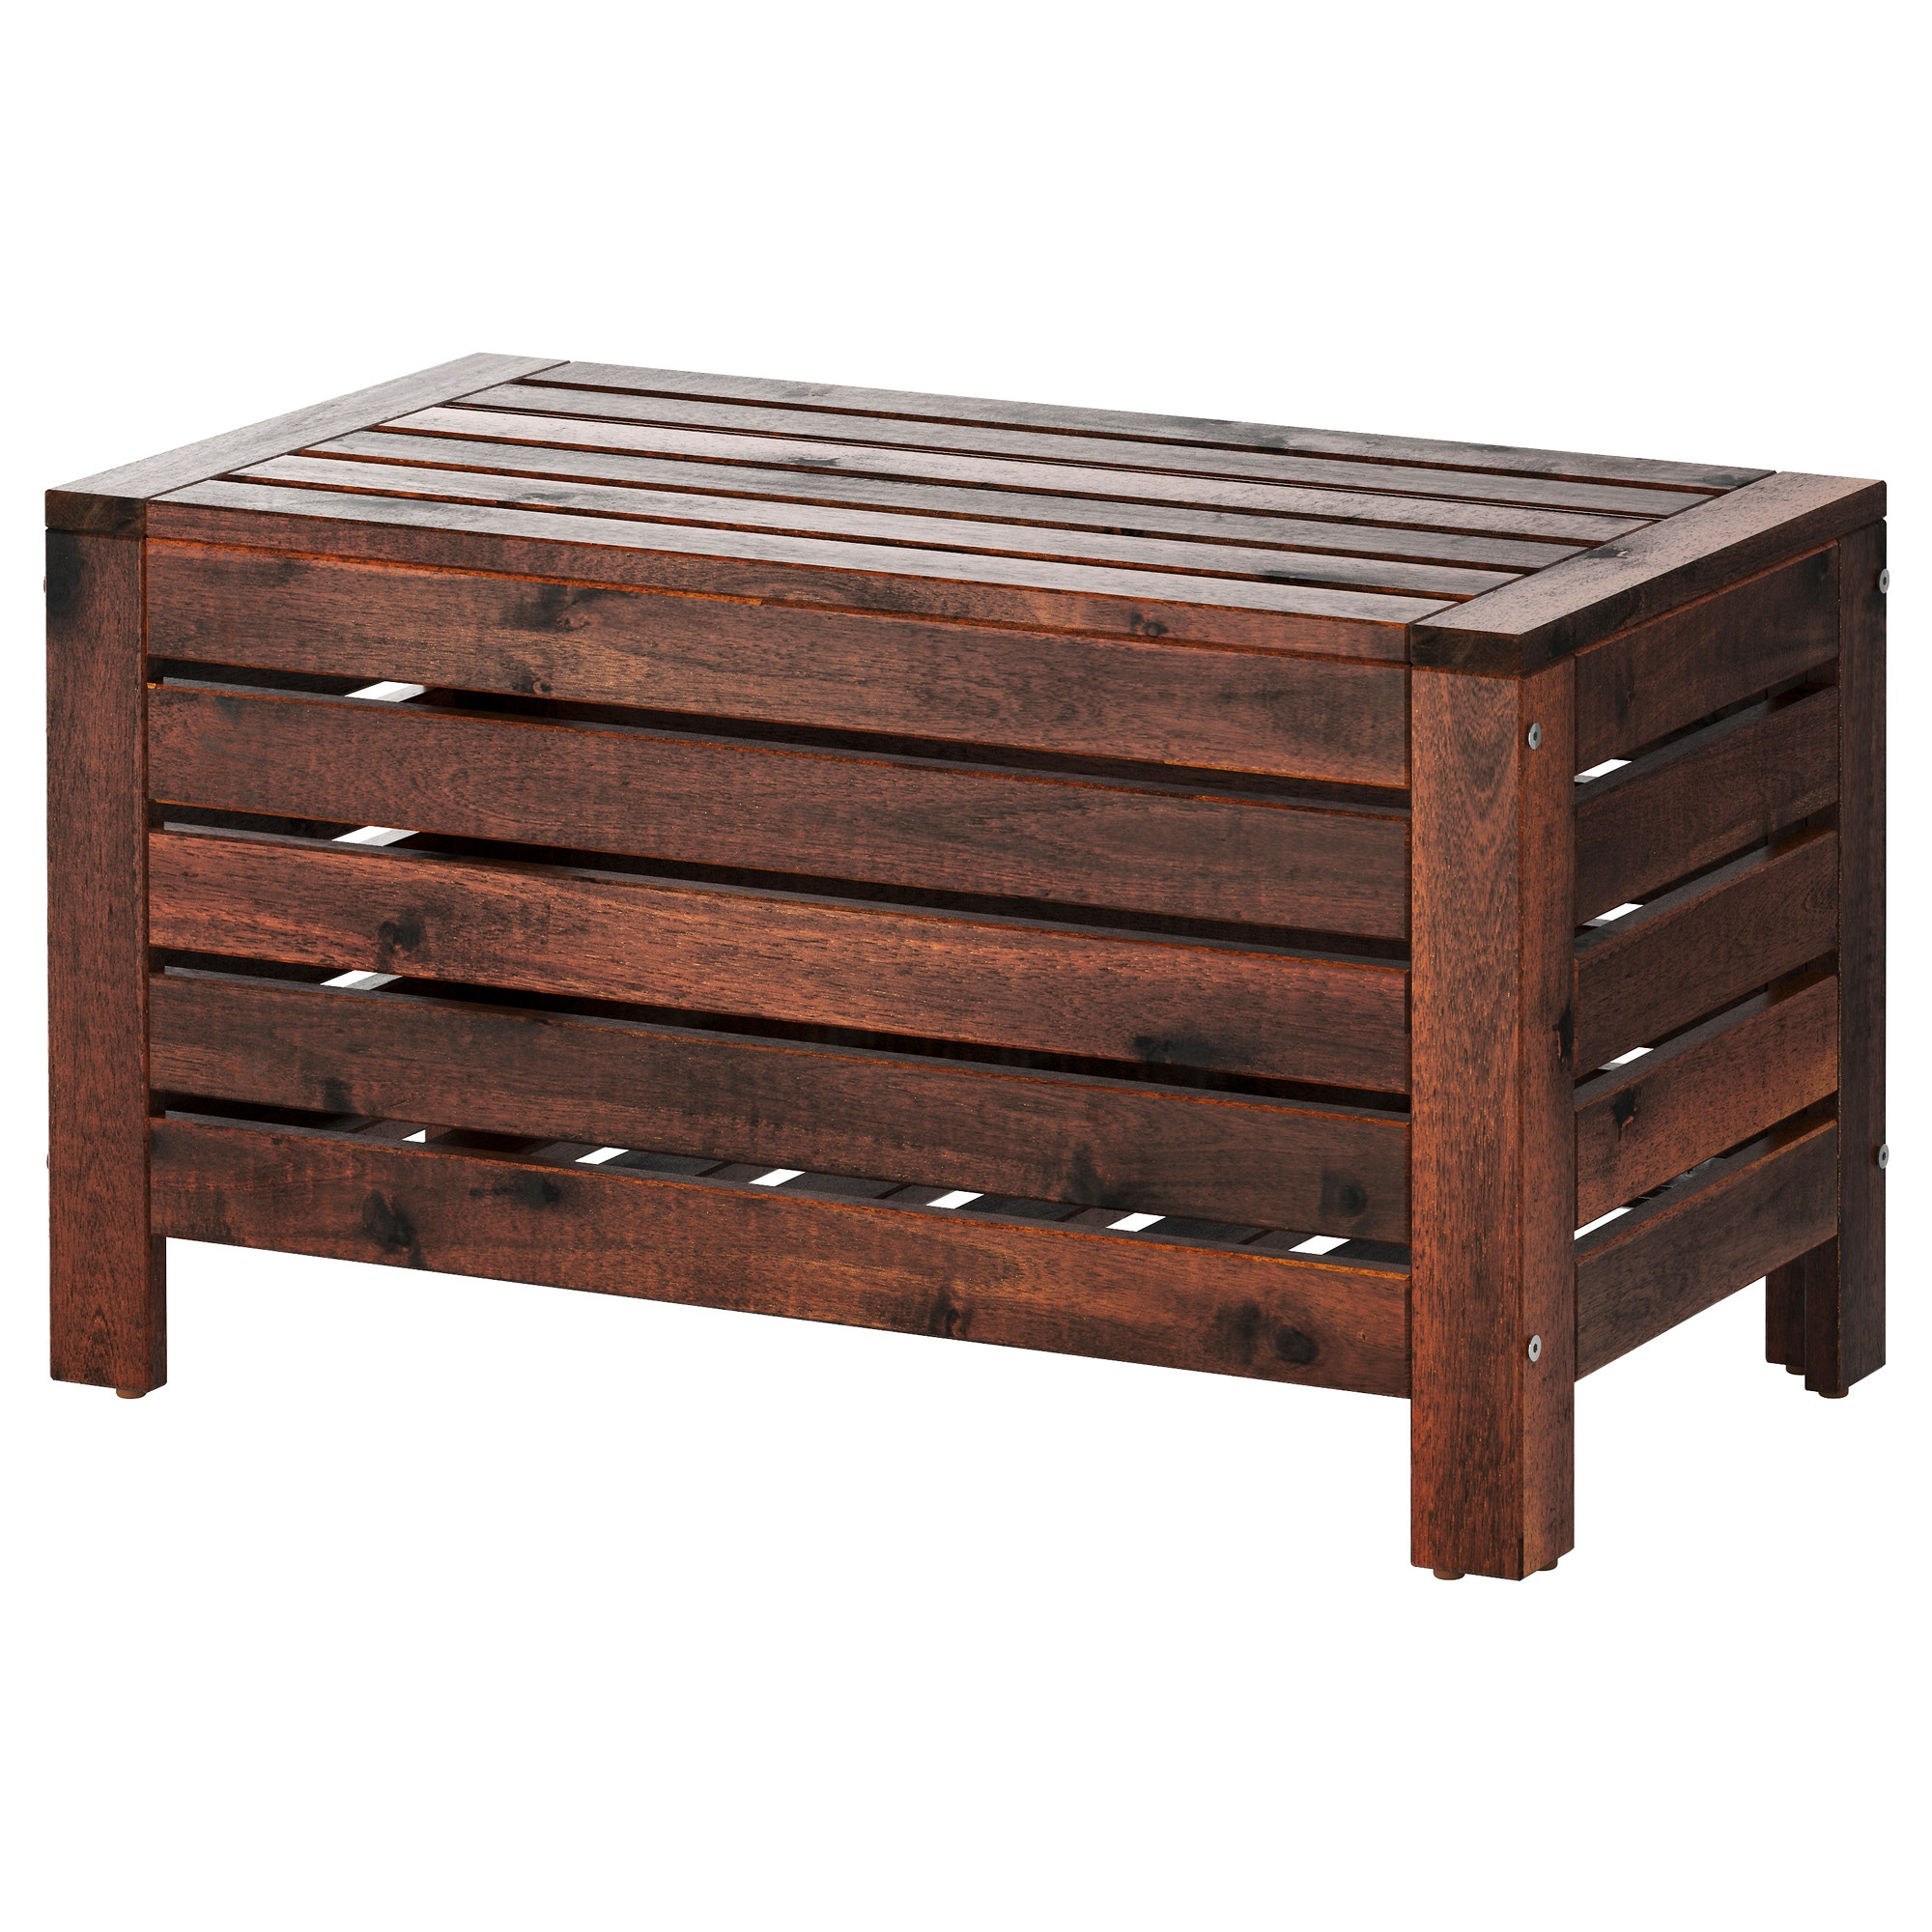 ÄPPLARÖ Storage Bench, Outdoor, Brown Brown Stained Width: 31 1/2  Part 69